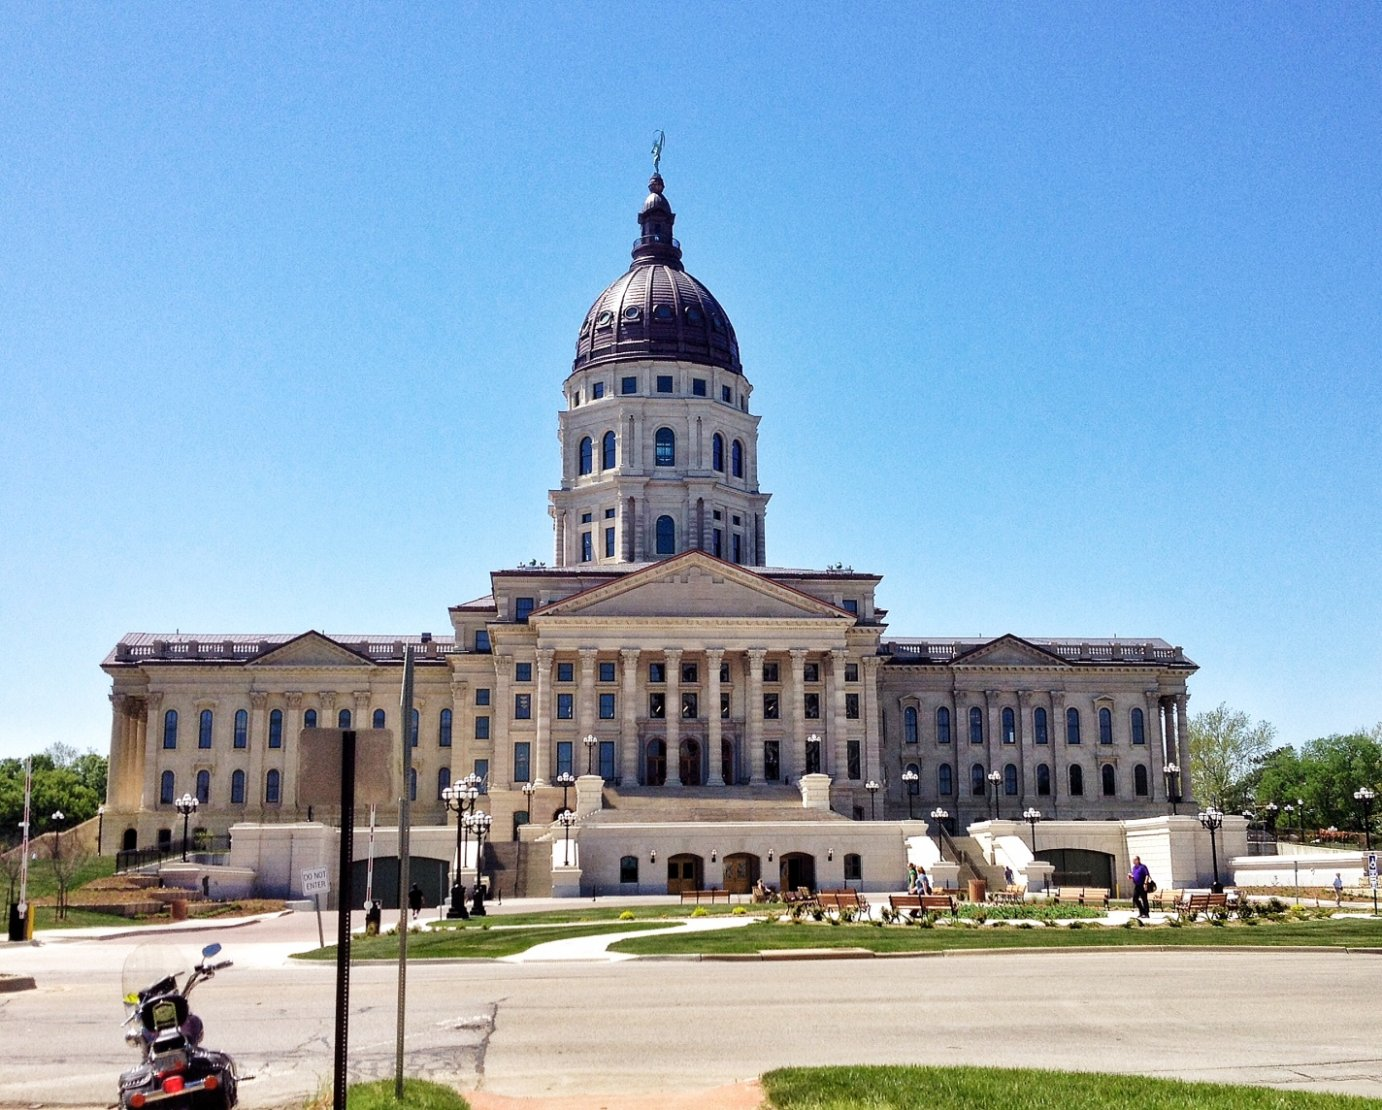 The Kansas Statehouse on a bright and sunny day.  (Photo by J. Schafer)